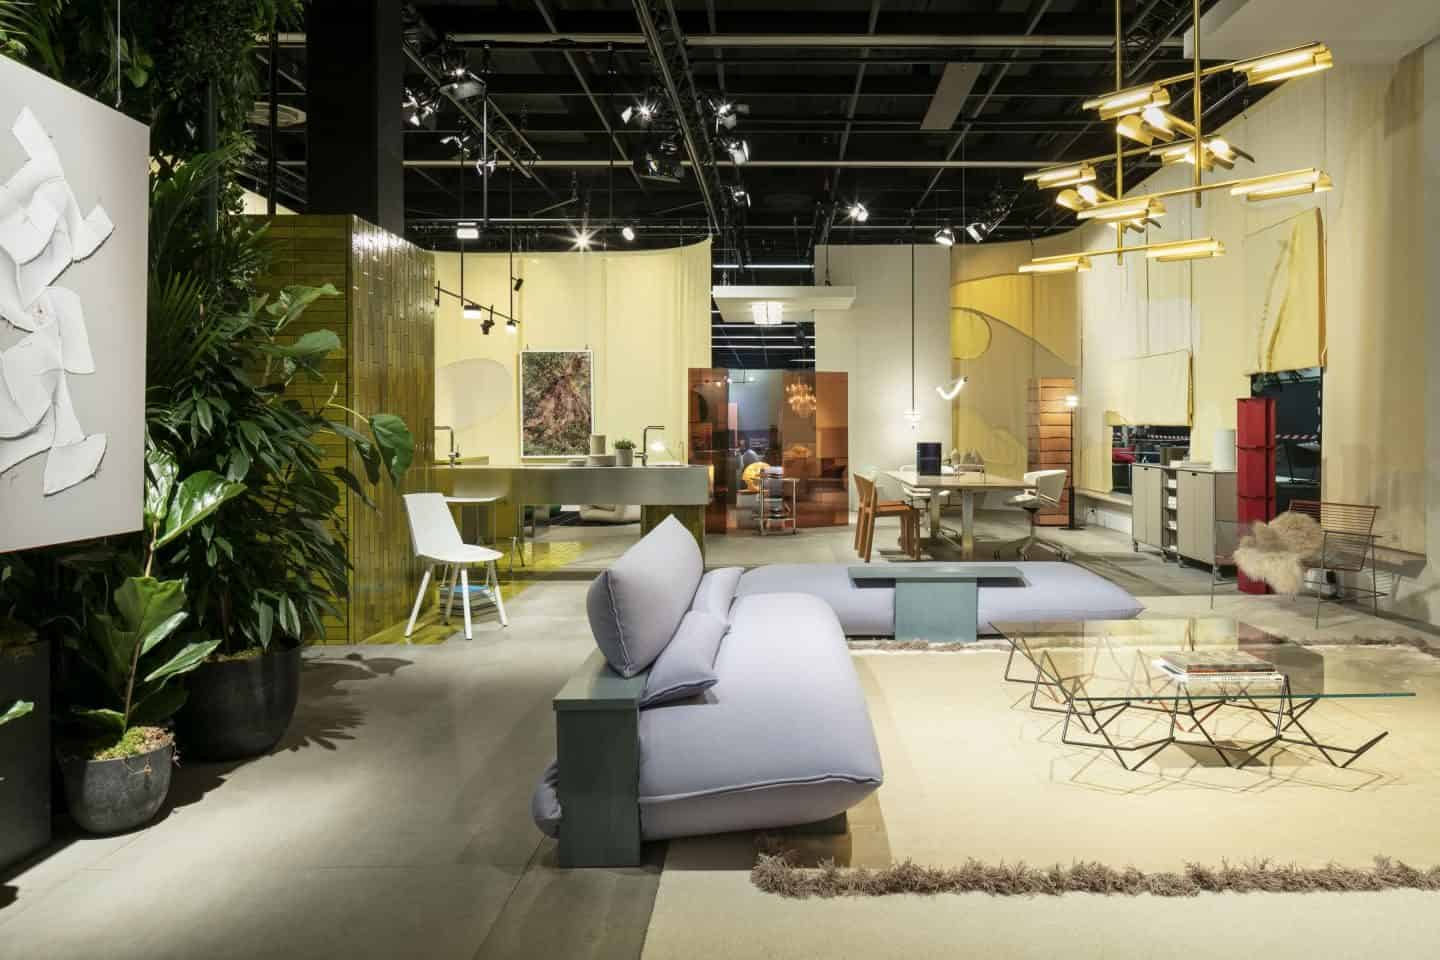 Imm Cologne 2019 Das Haus by Truly Truly - a house where the boundaries between the rooms disappear